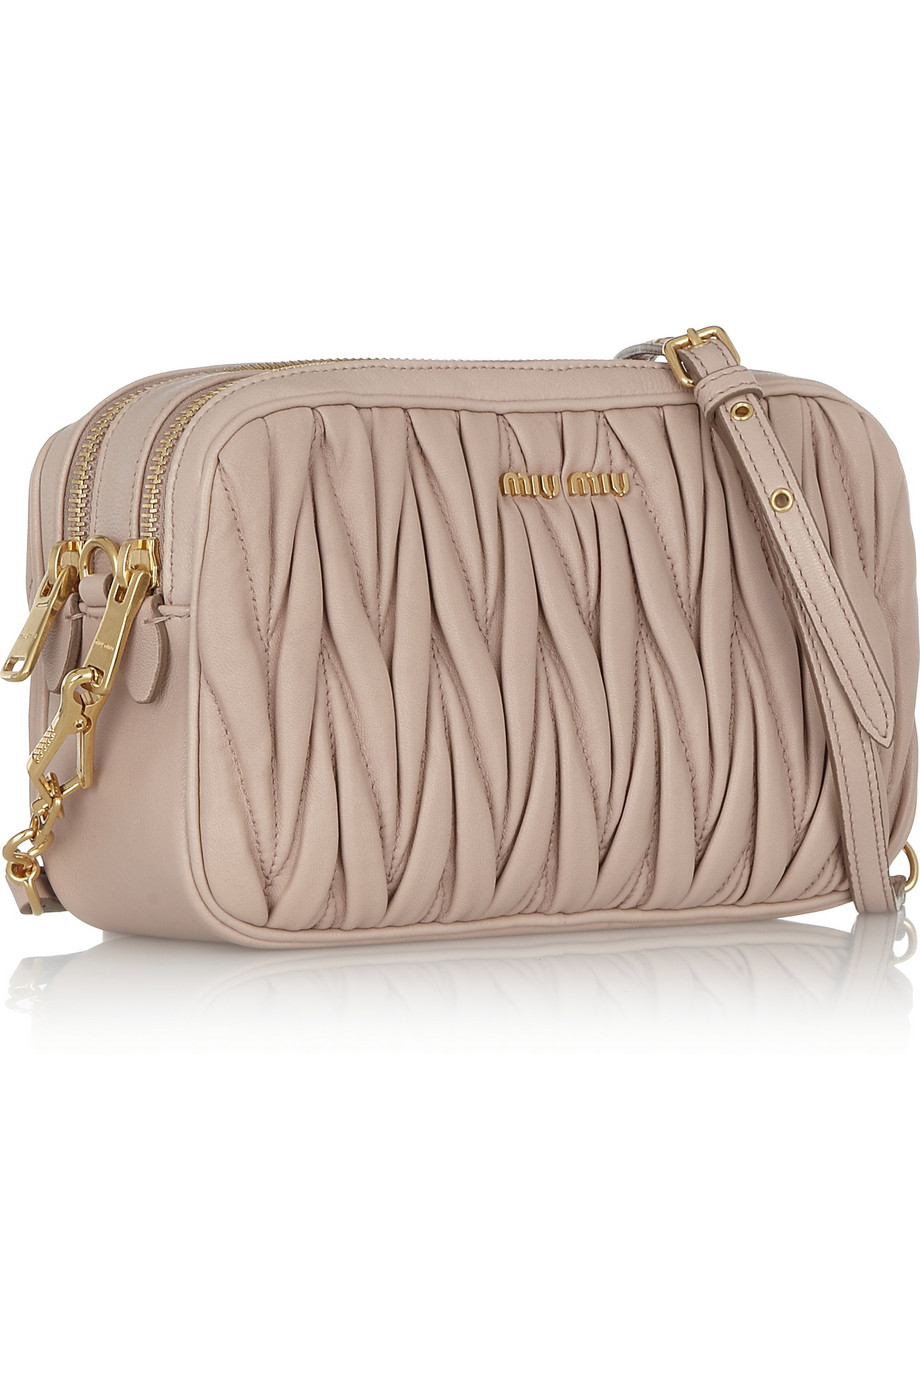 Miu Miu Matelassé Small Shoulder Bag TmLjy